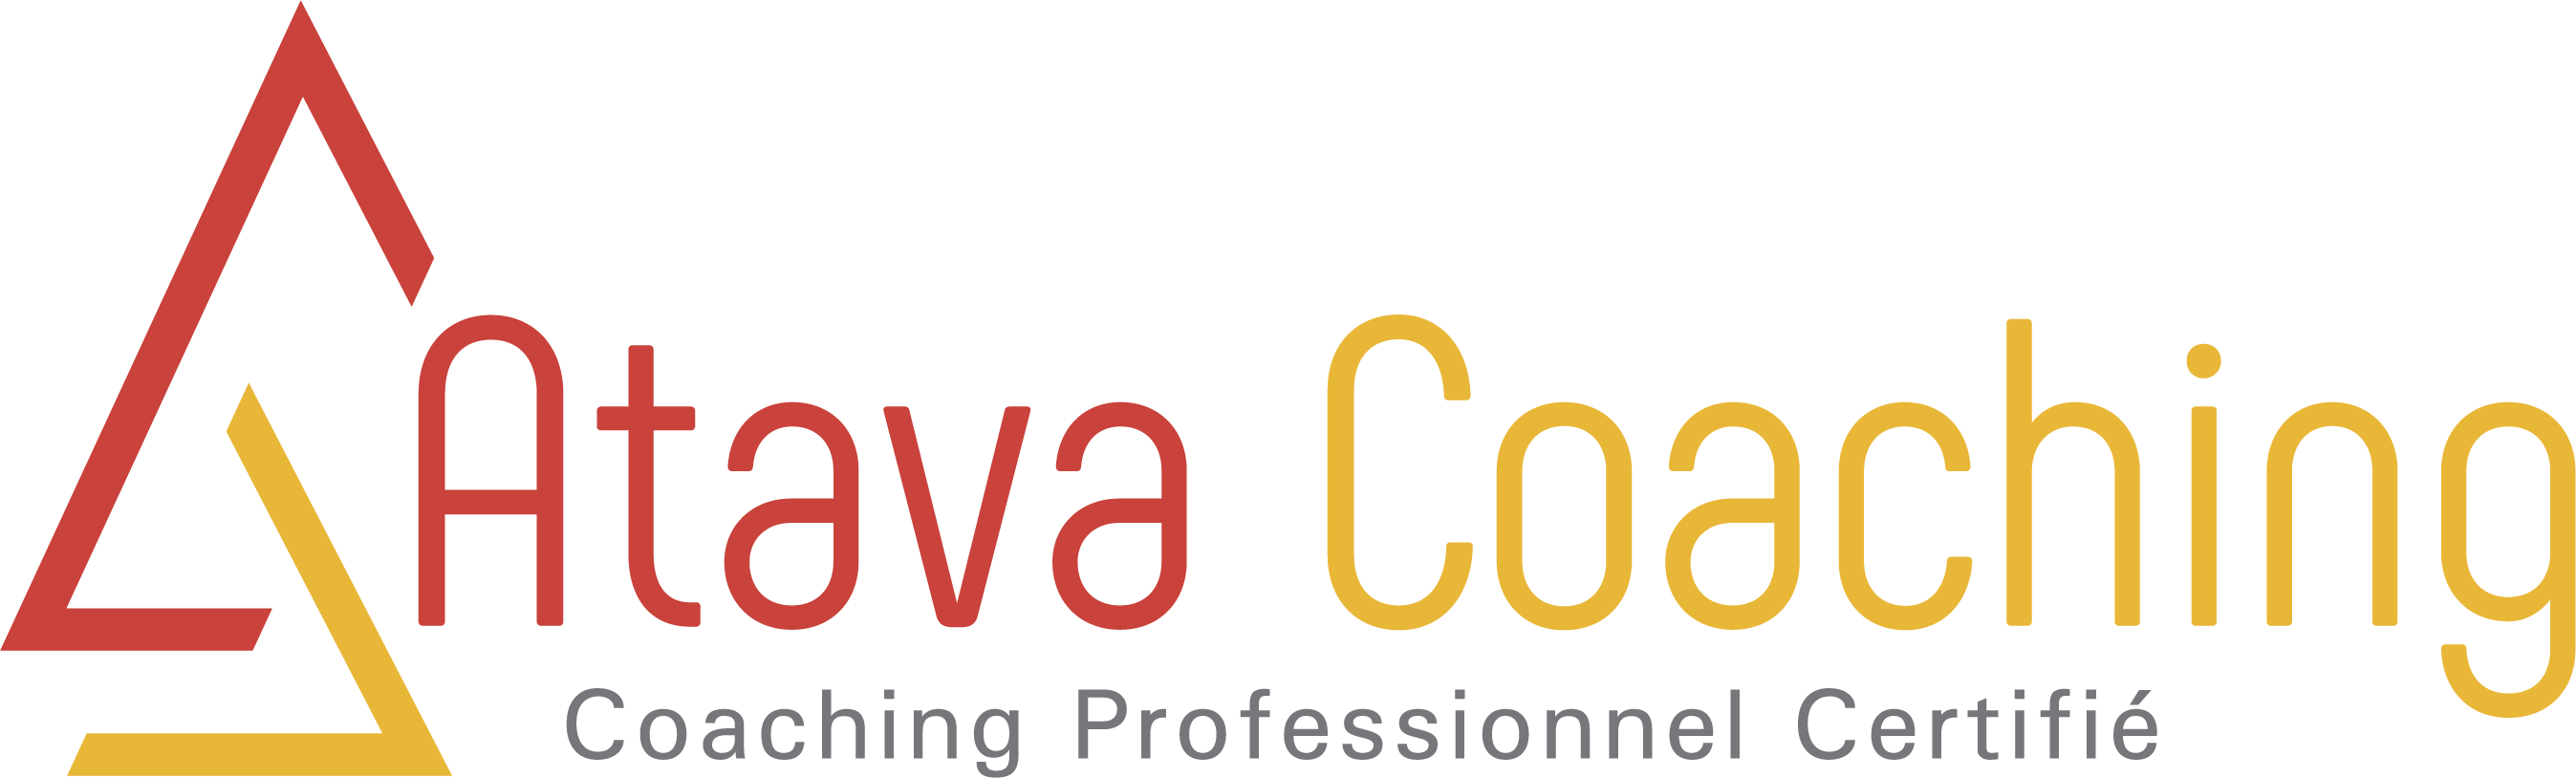 Atava Coaching